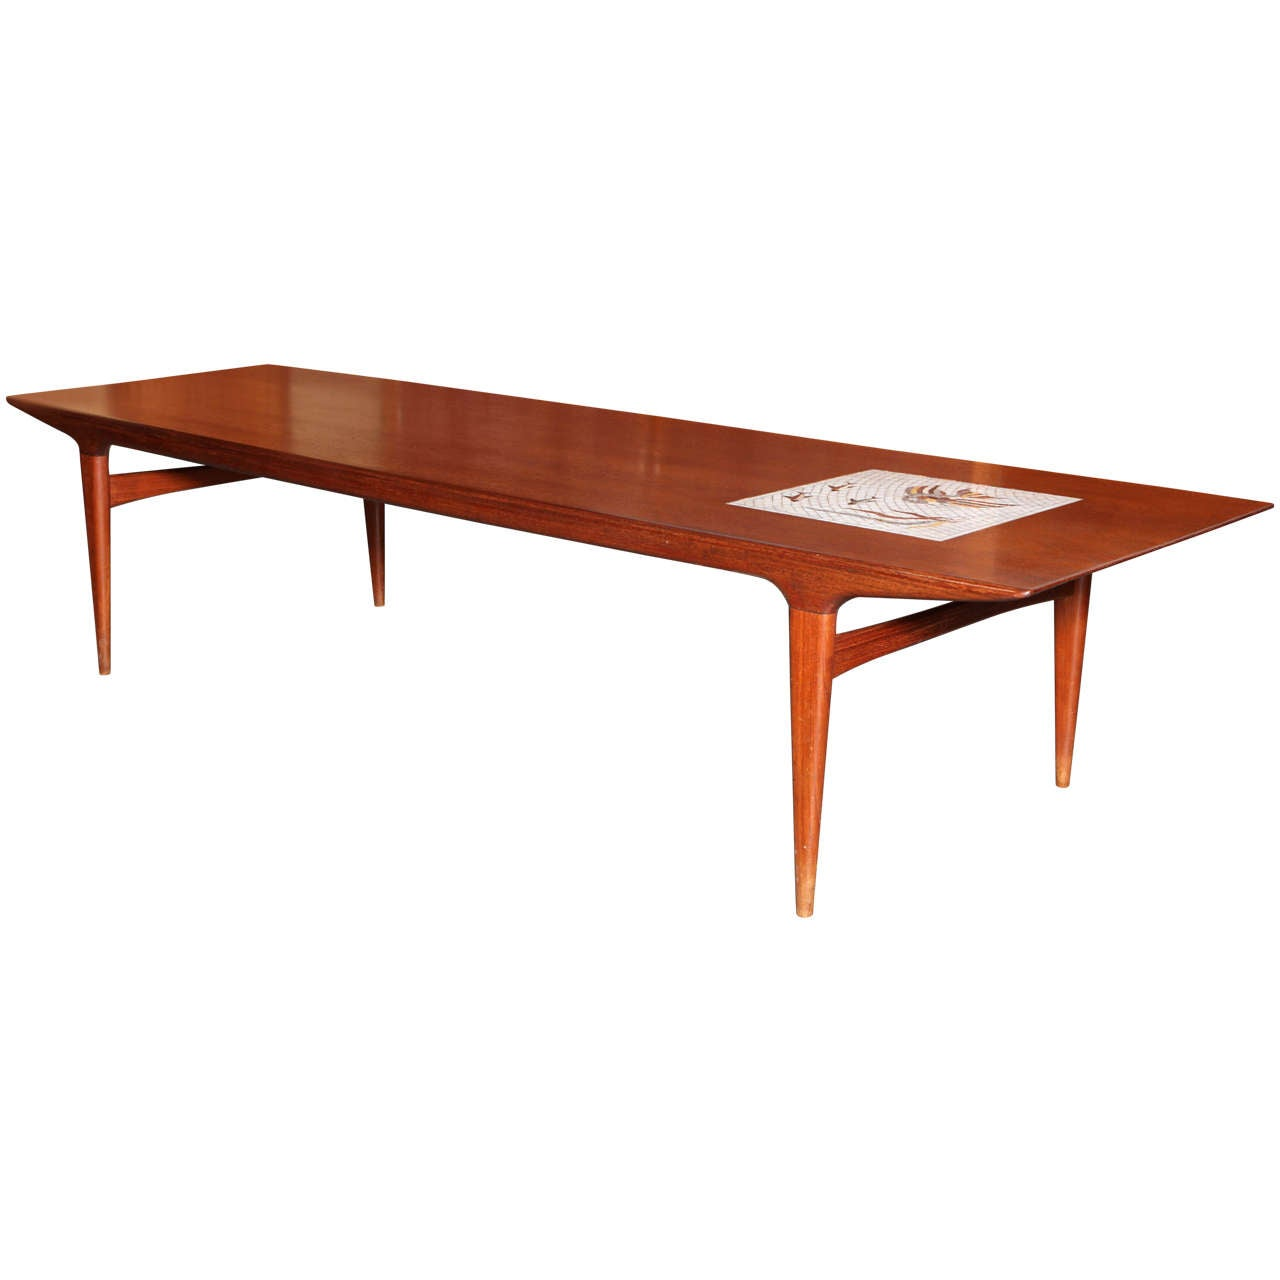 Teak Coffee Table With Mosaic Tile By Johannes Andersen At 1stdibs